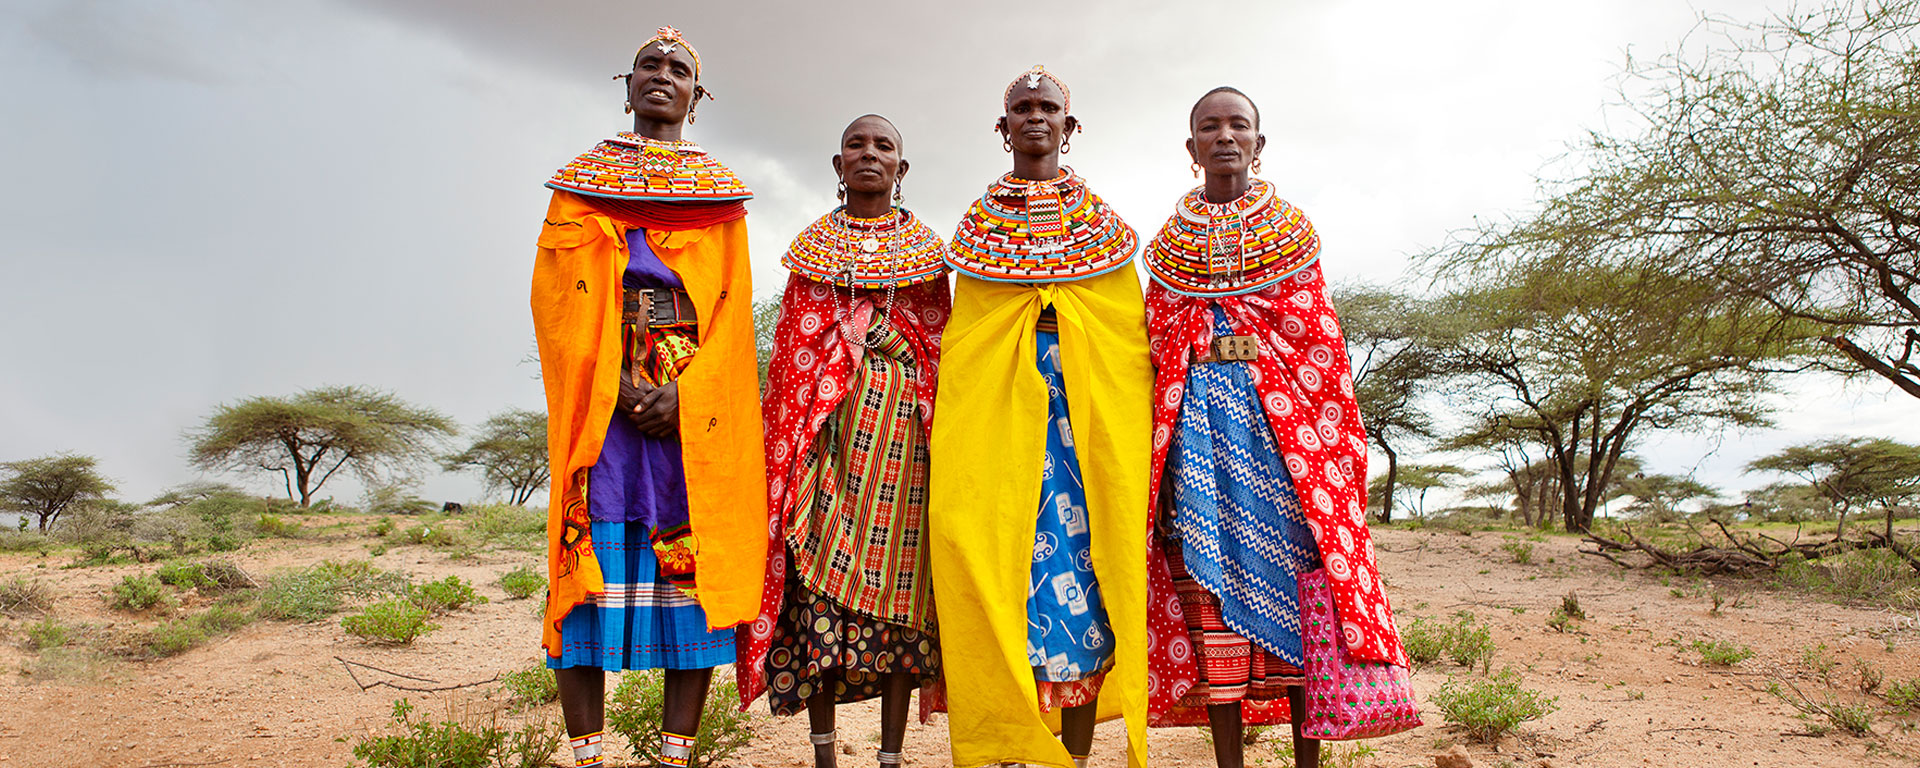 Take inspiration from stylish Samburu women and look out for traditional fabrics, jewellery and beadwork.